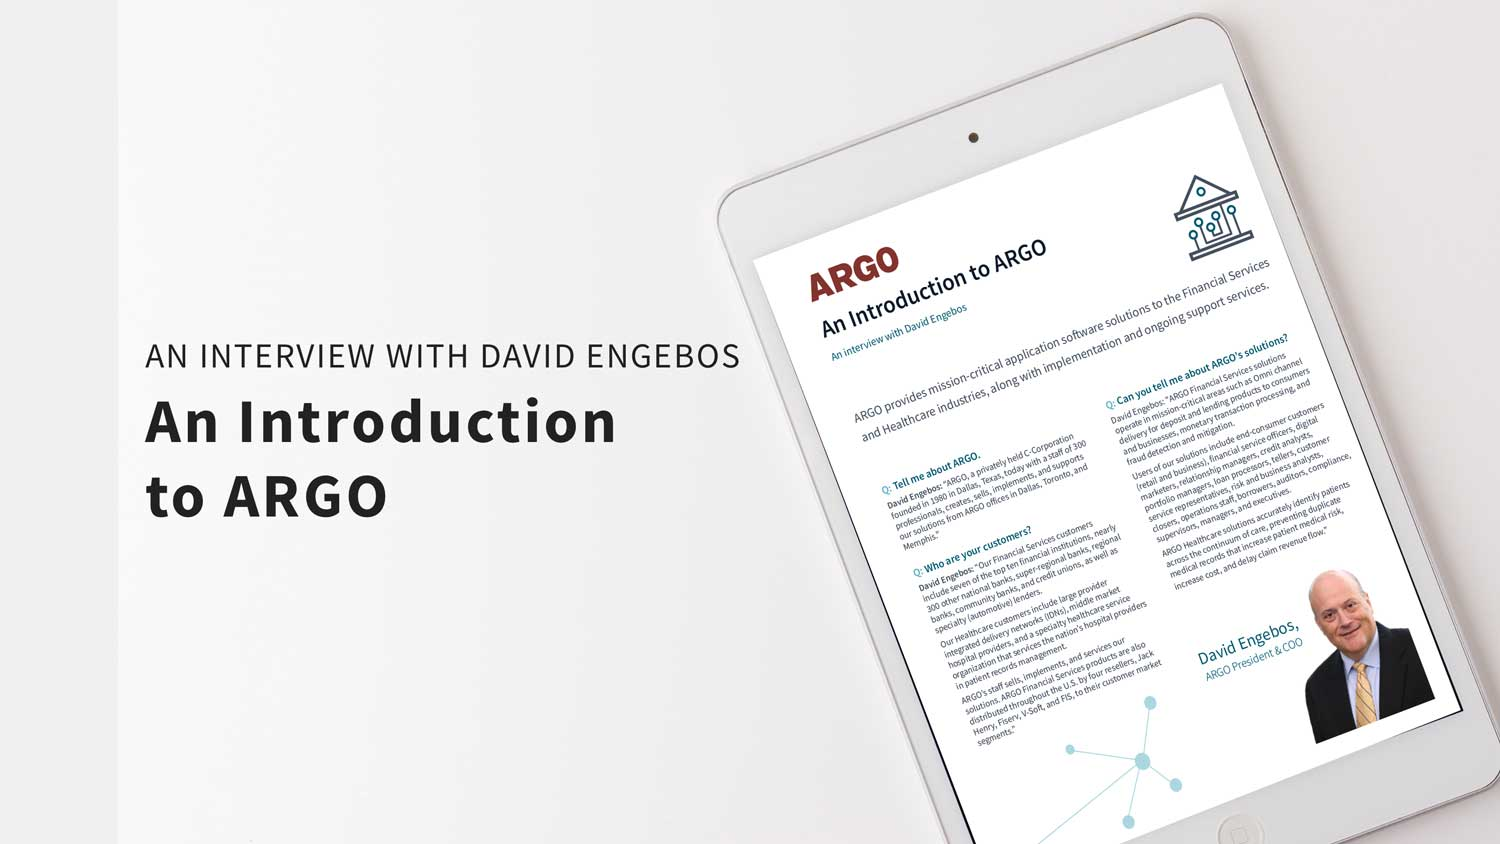 An introduction to ARGO